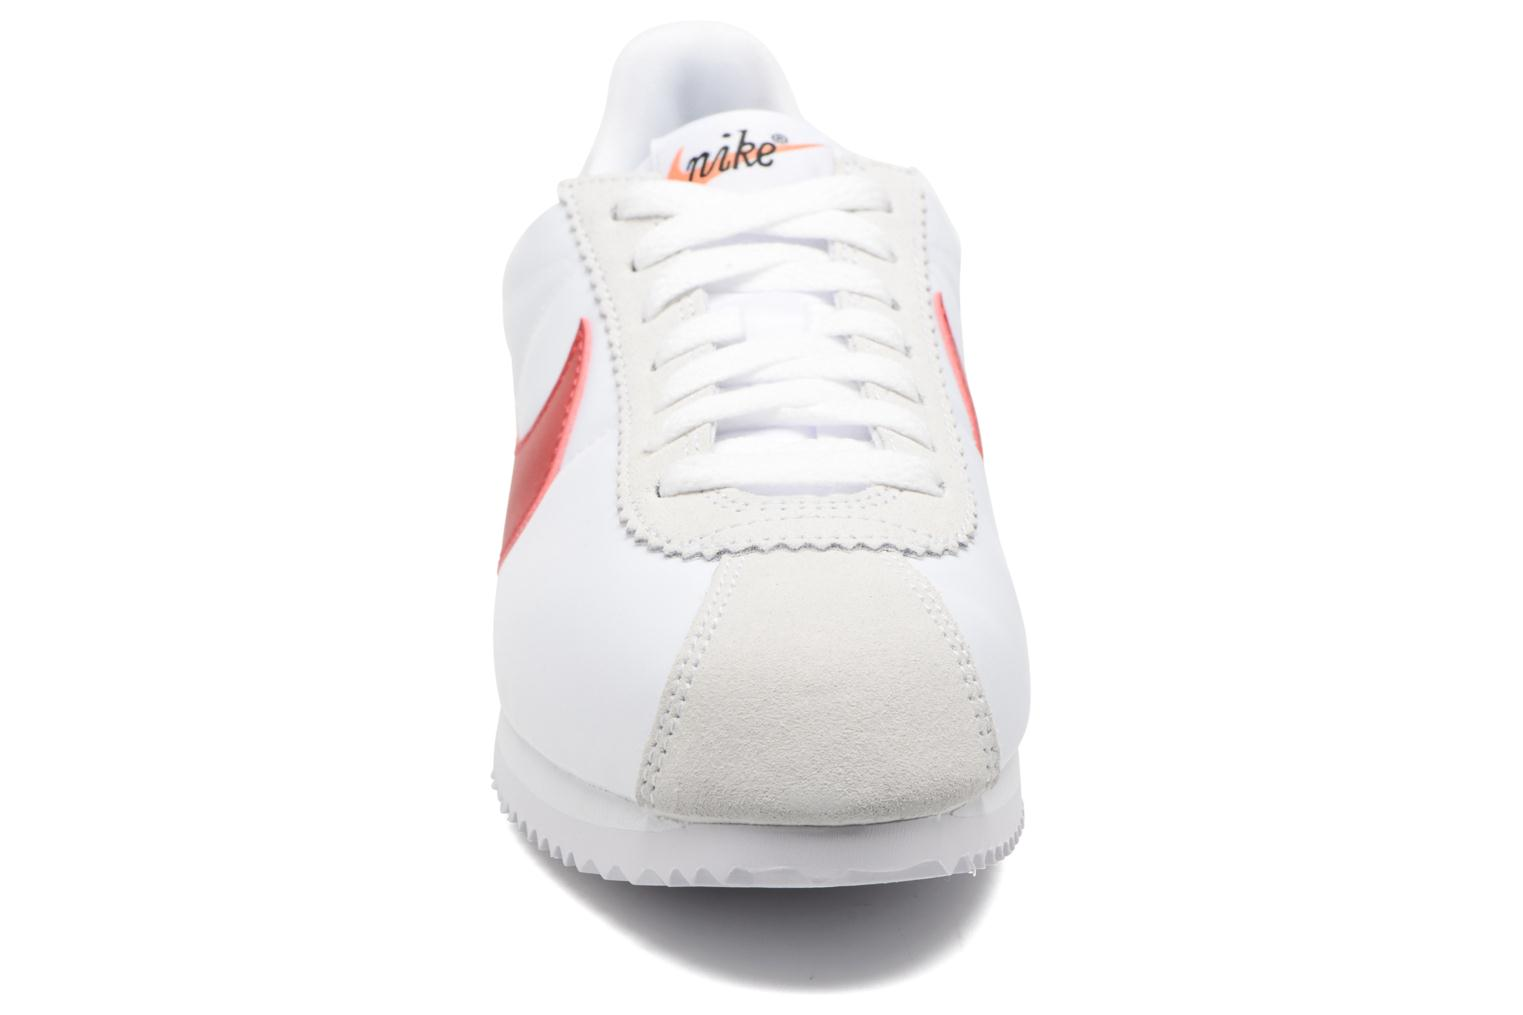 W Classic Cortez Leather Se White/Varsity Red-Varsity Royal